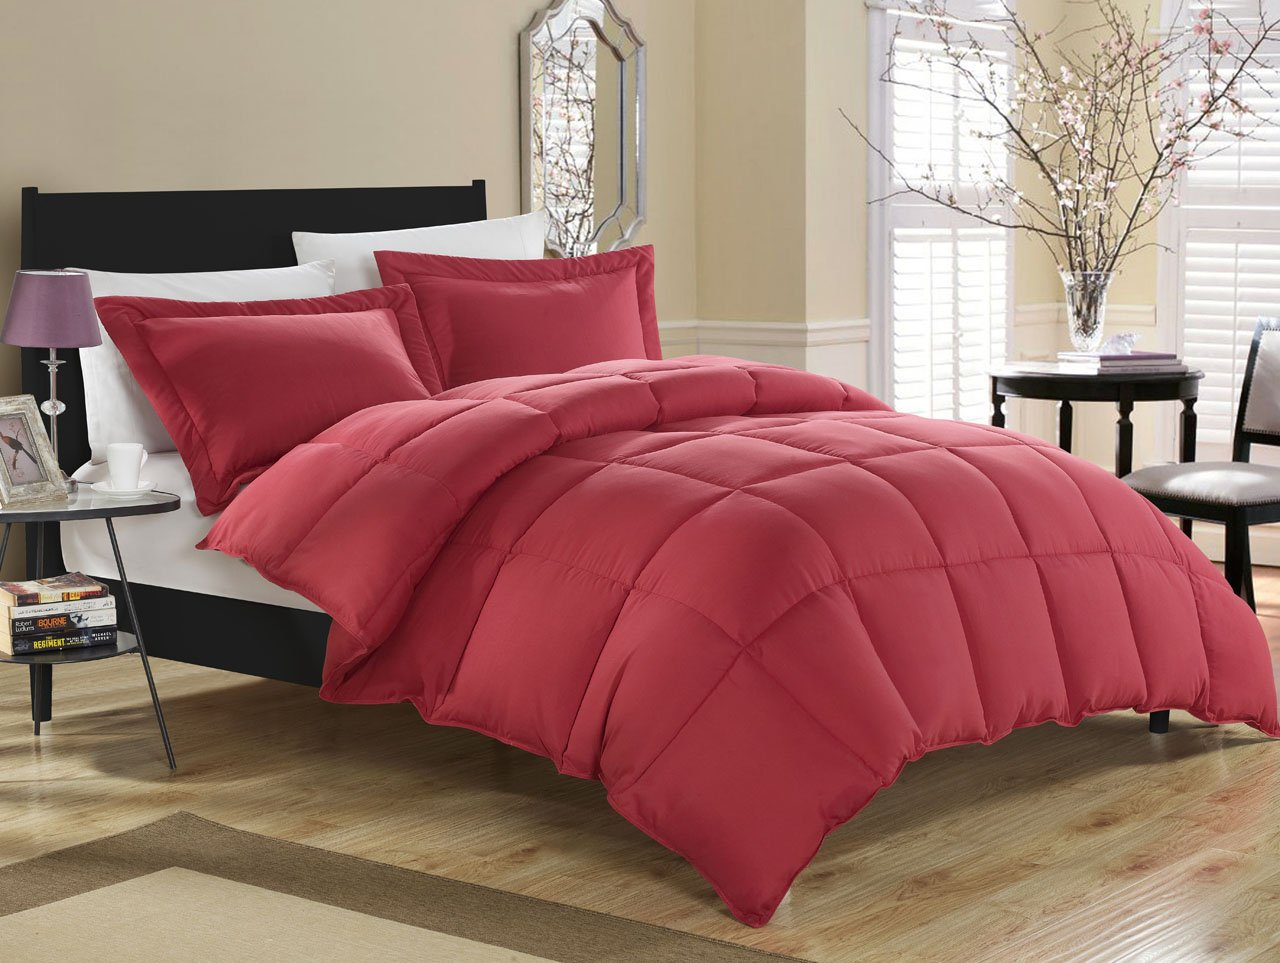 pink queen concept black and style sets comforter red of xcode appealing with gold bed pics set bedding curtains